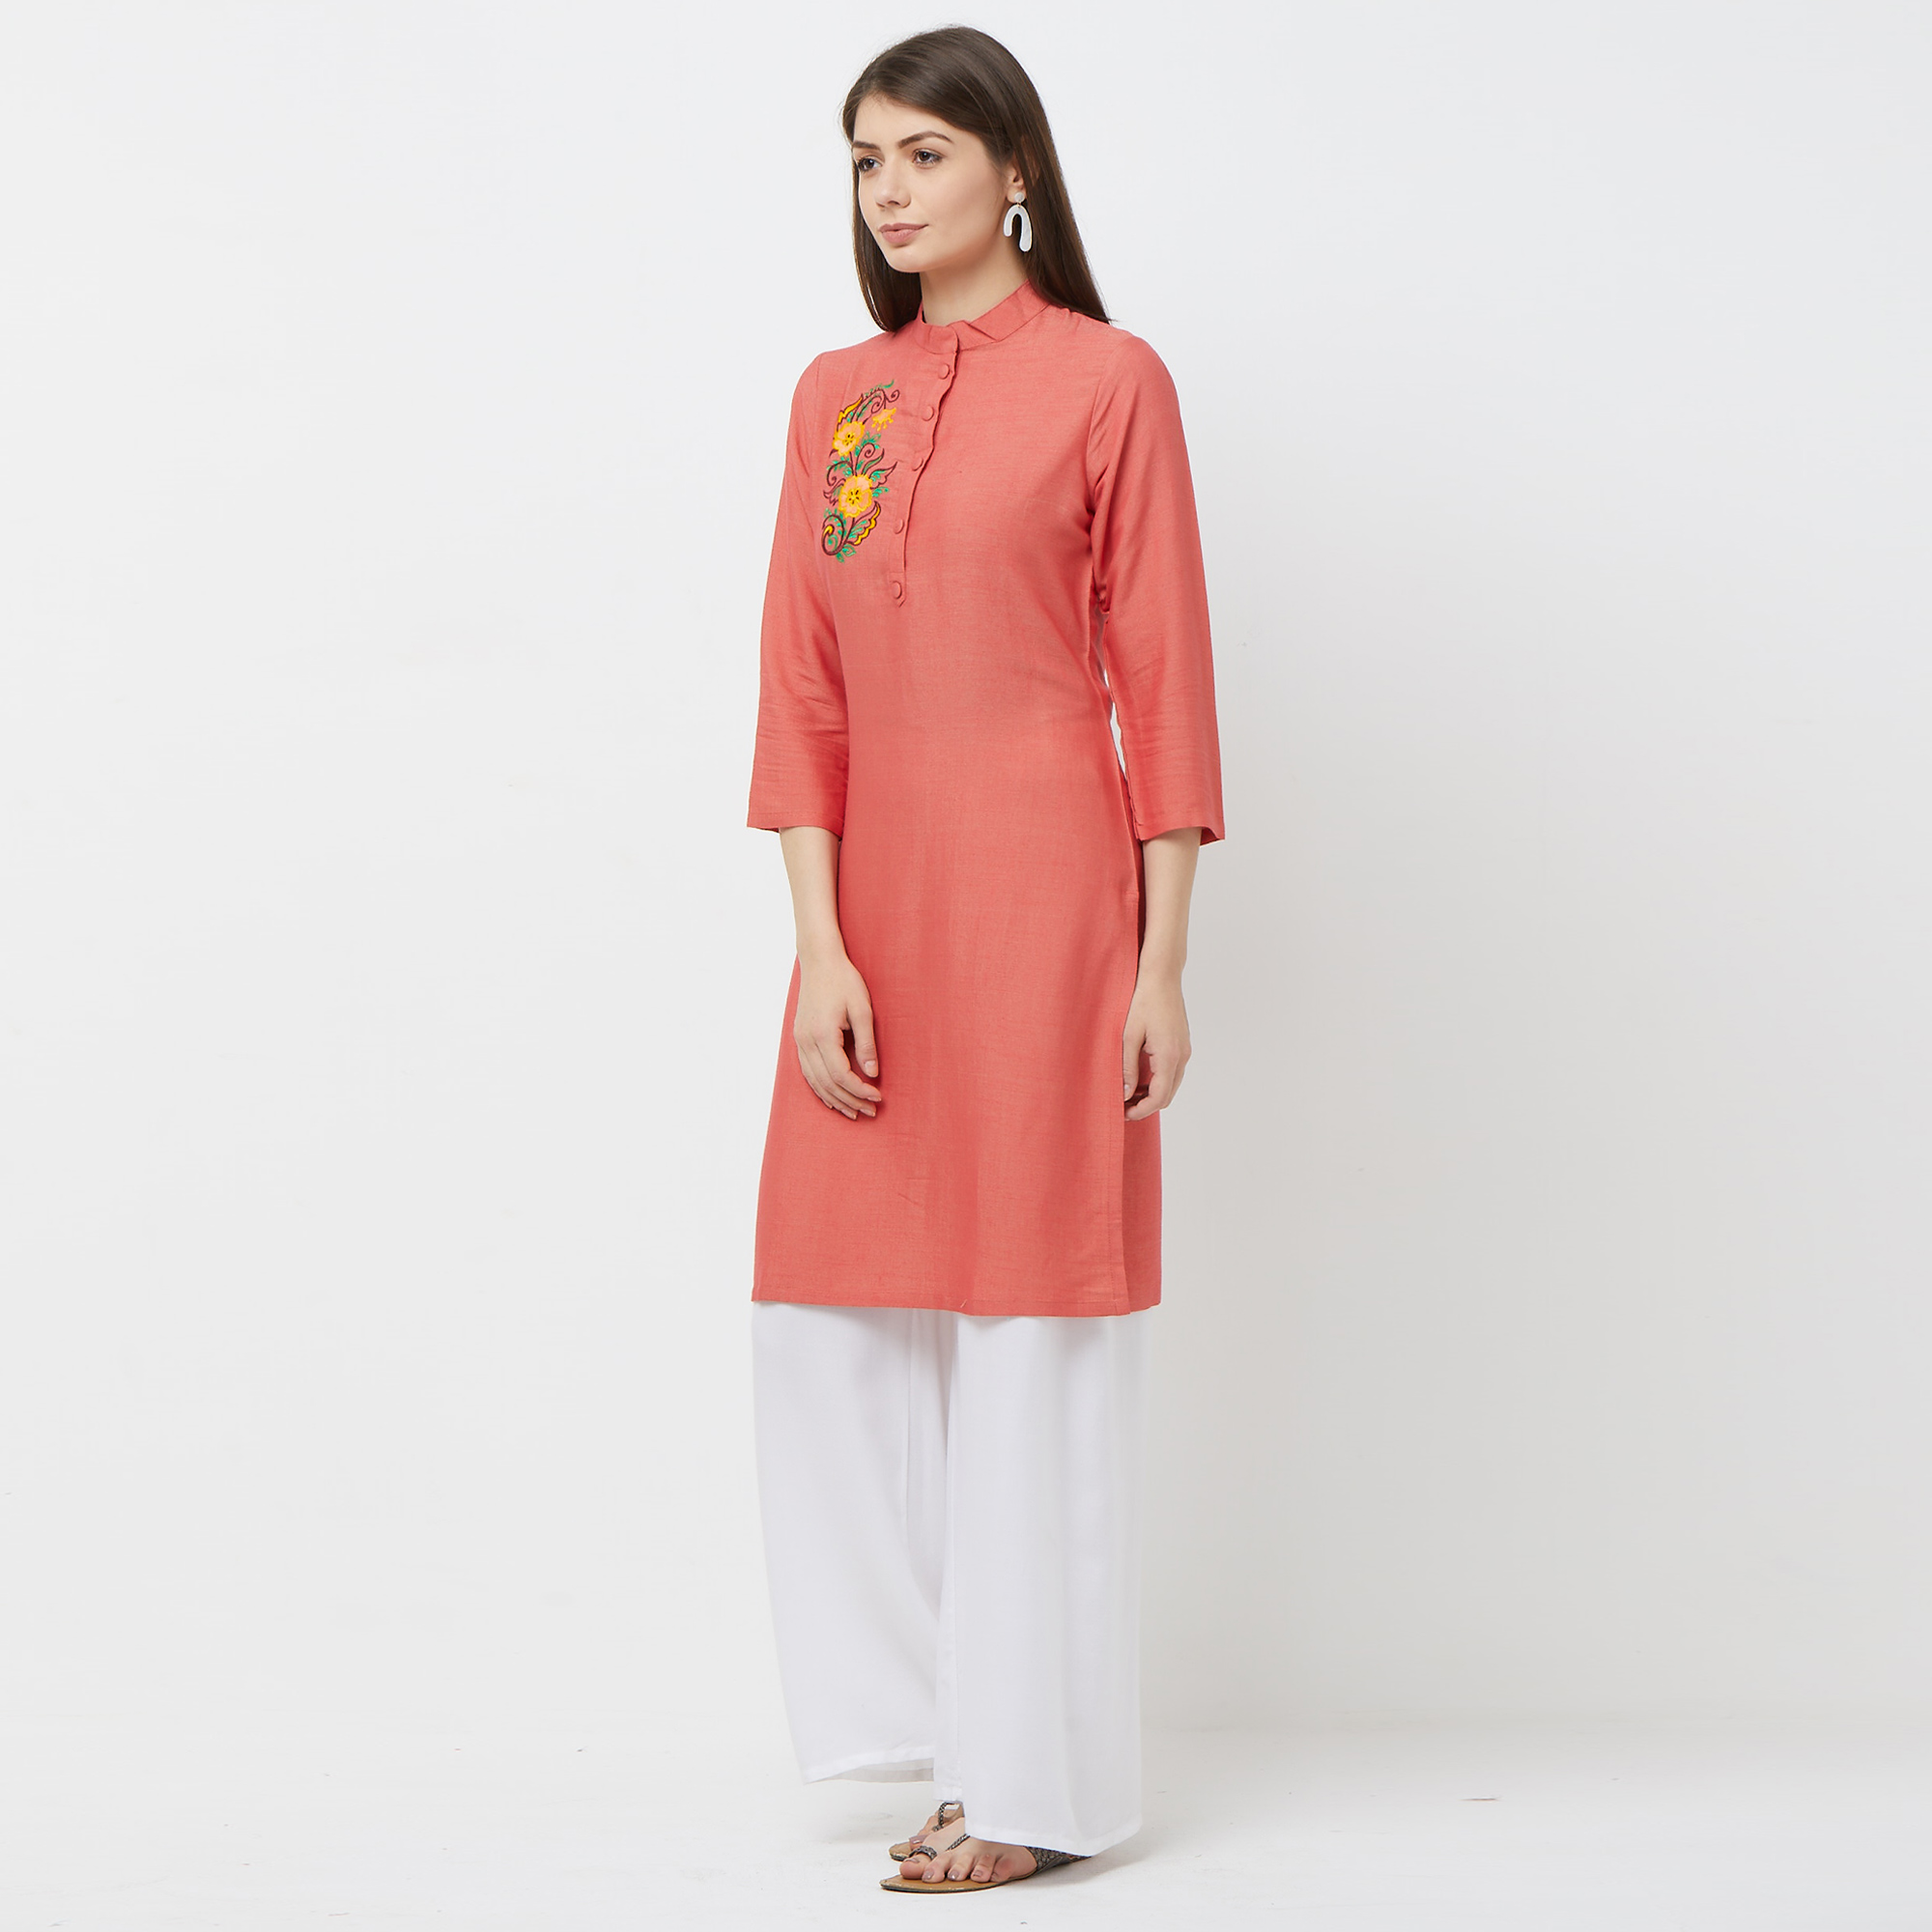 Adorning Peach Colored Casual Embroidered Cotton Kurti